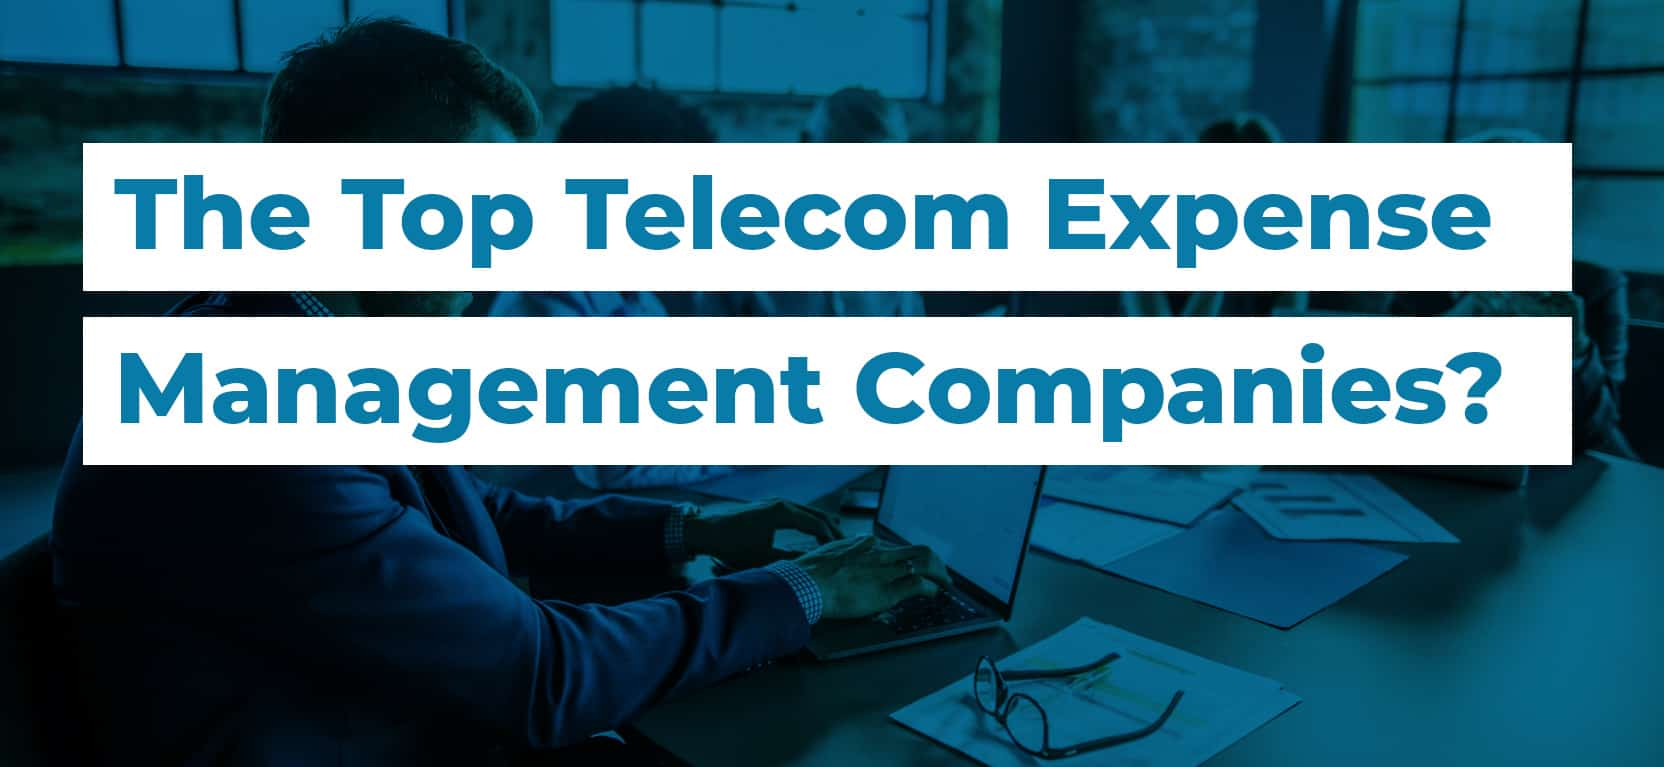 61 What are the Top Telecom Expense Management Companies2